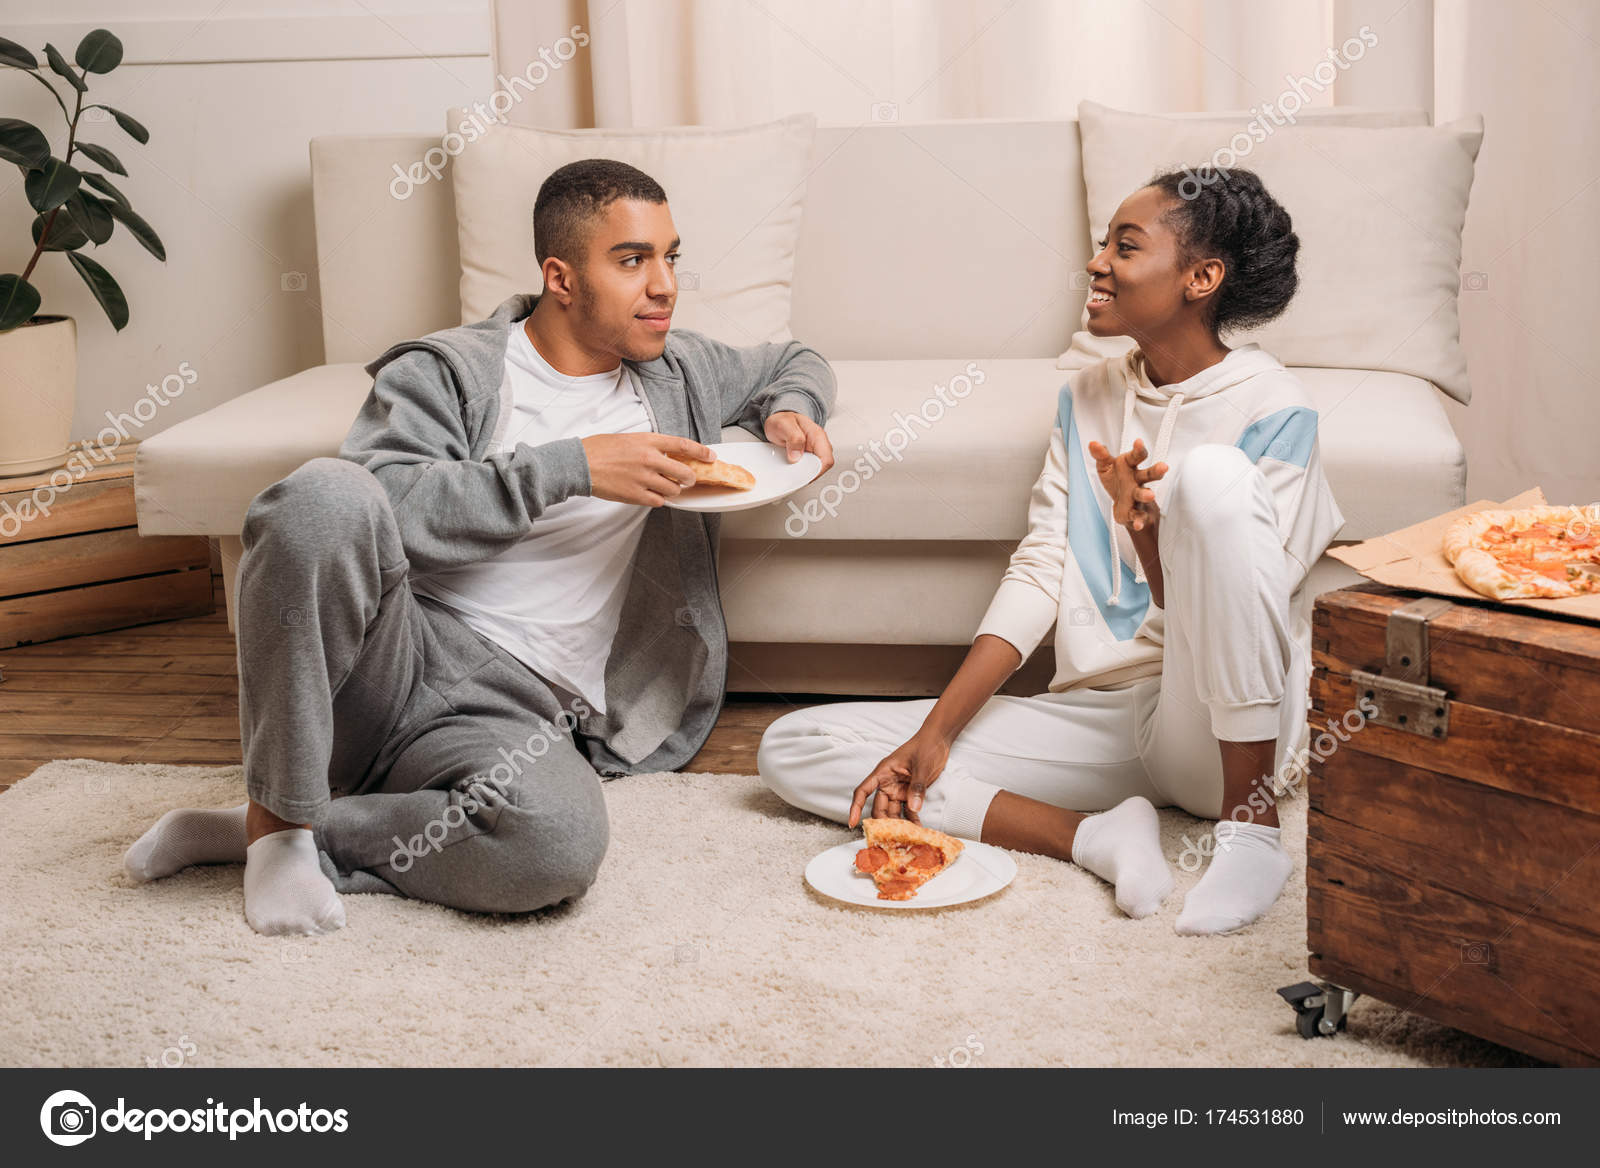 Eating Pizza Beside Sofa Stock Photo